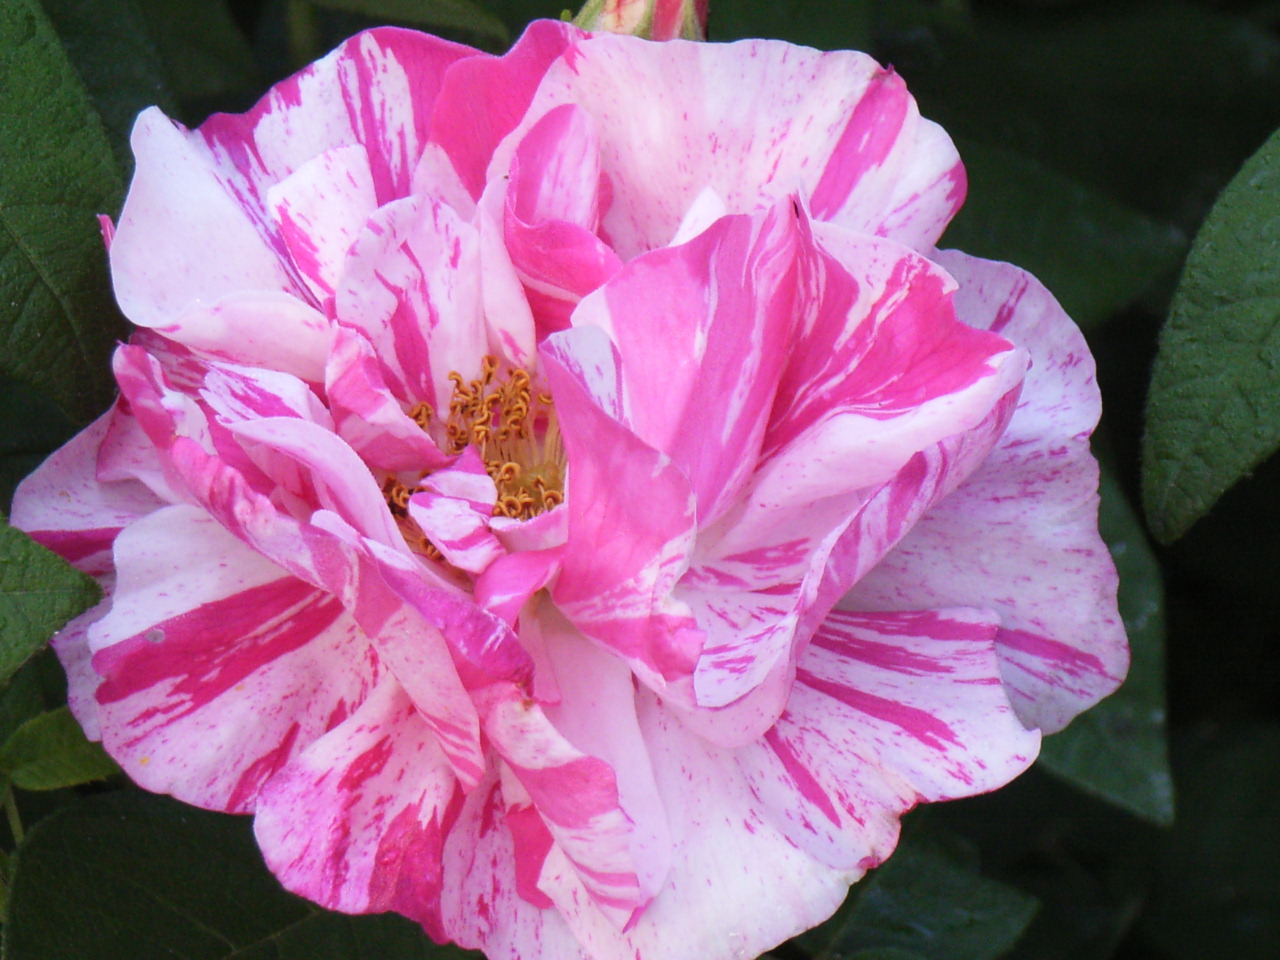 File:Rose- Rosa Mundi.JPG - Wikimedia Commons